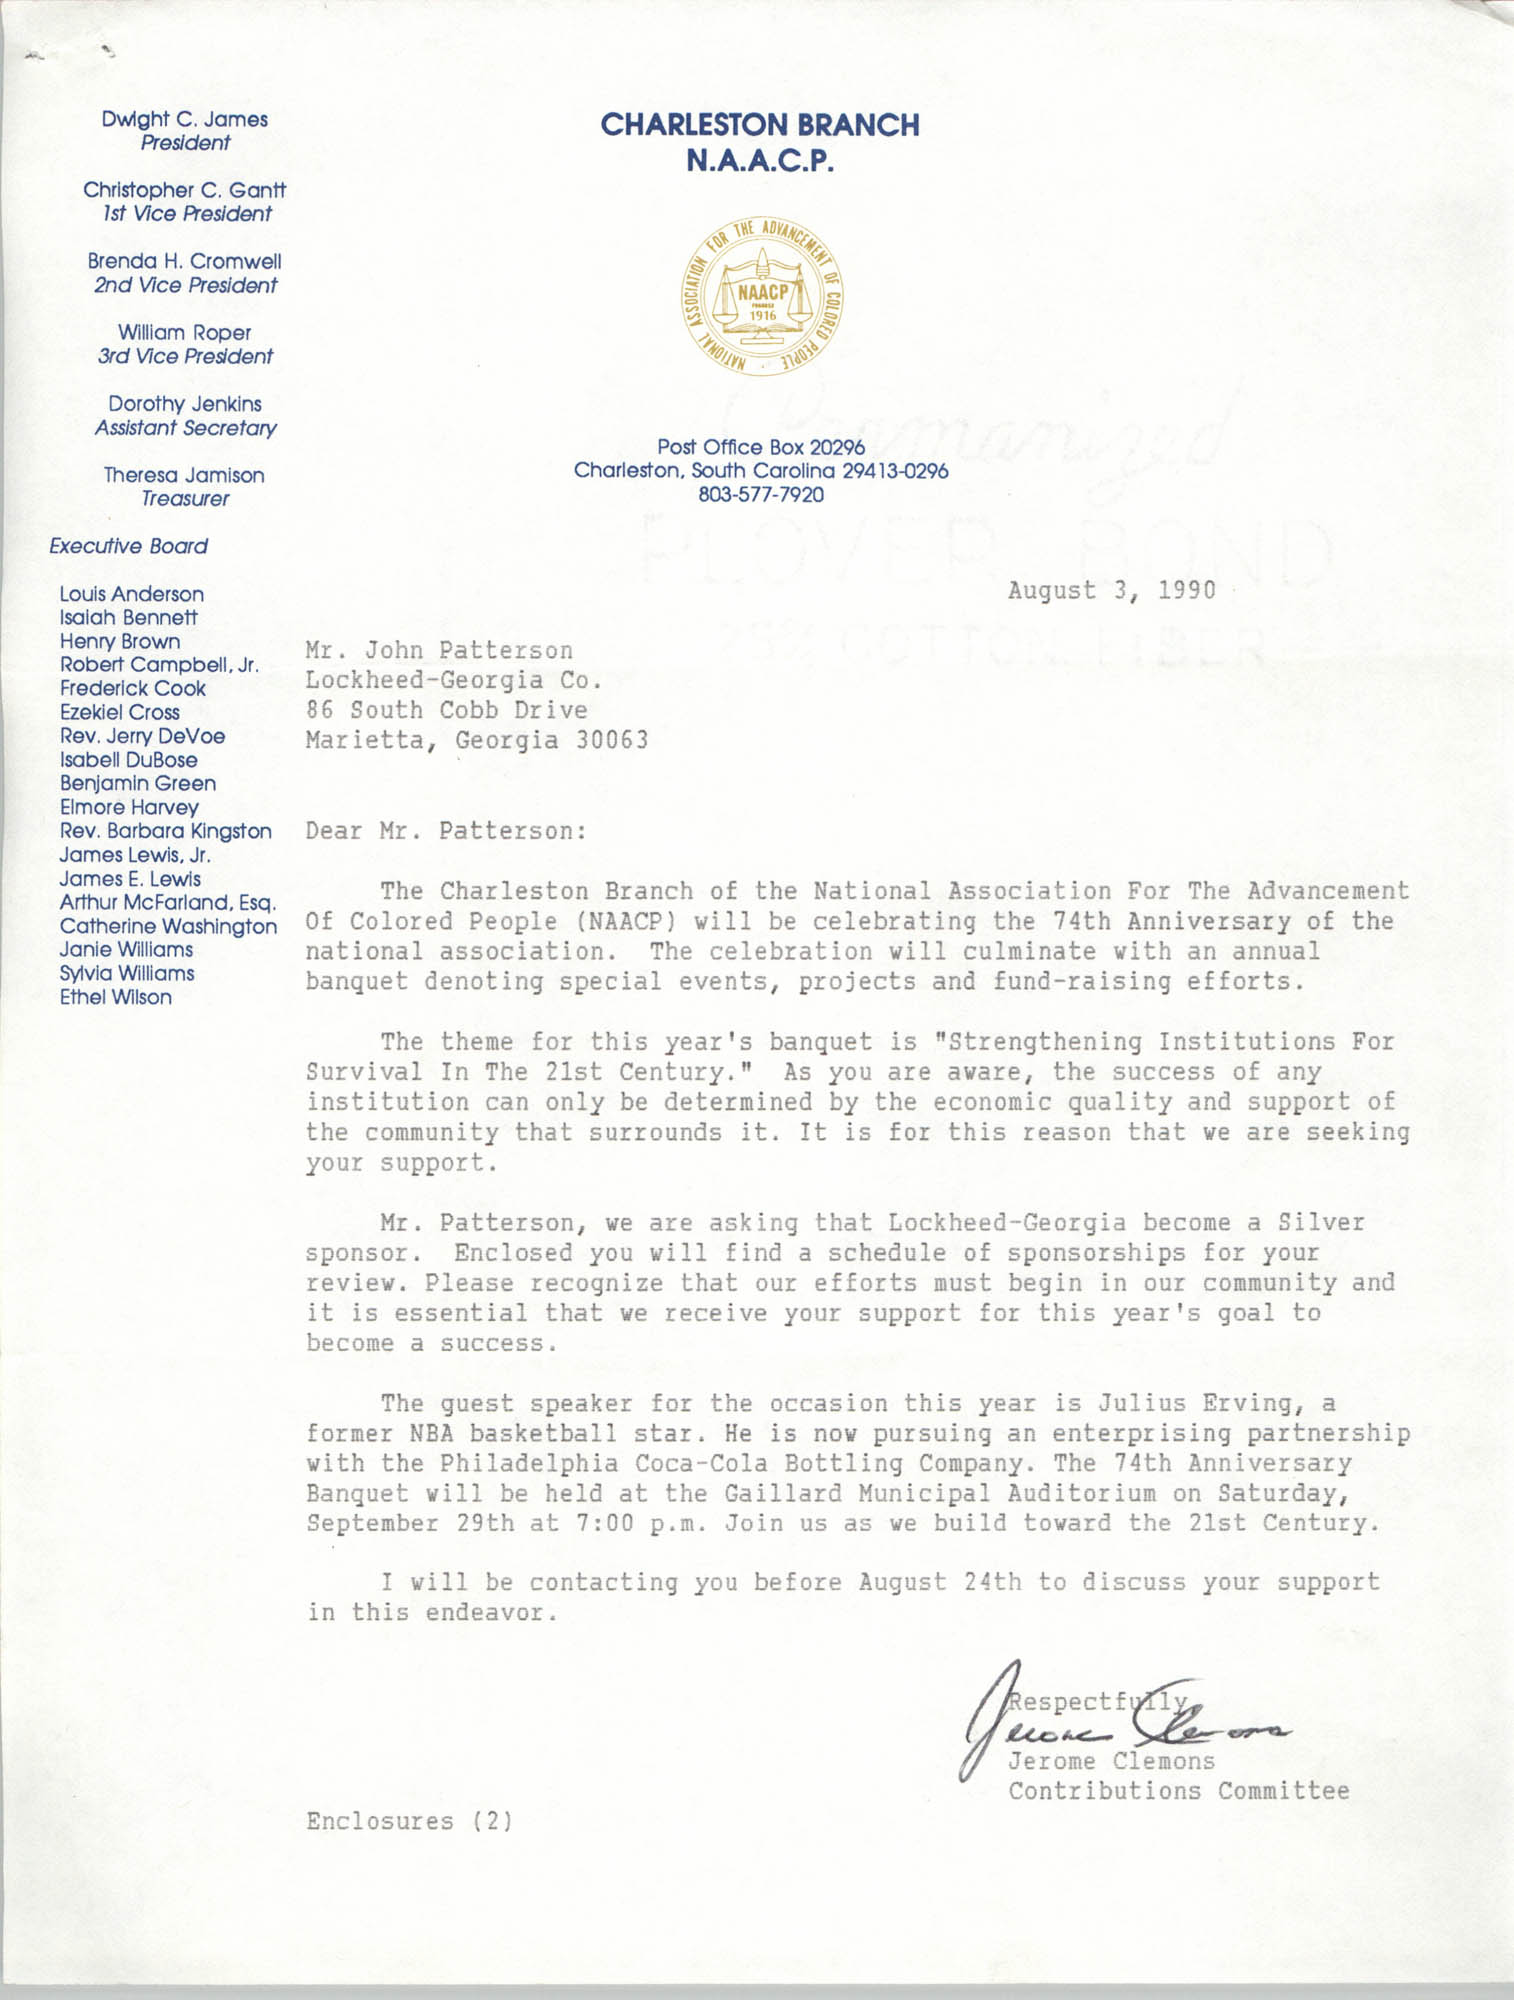 Letter from Jerome Clemons to John Patterson, August 3, 1990